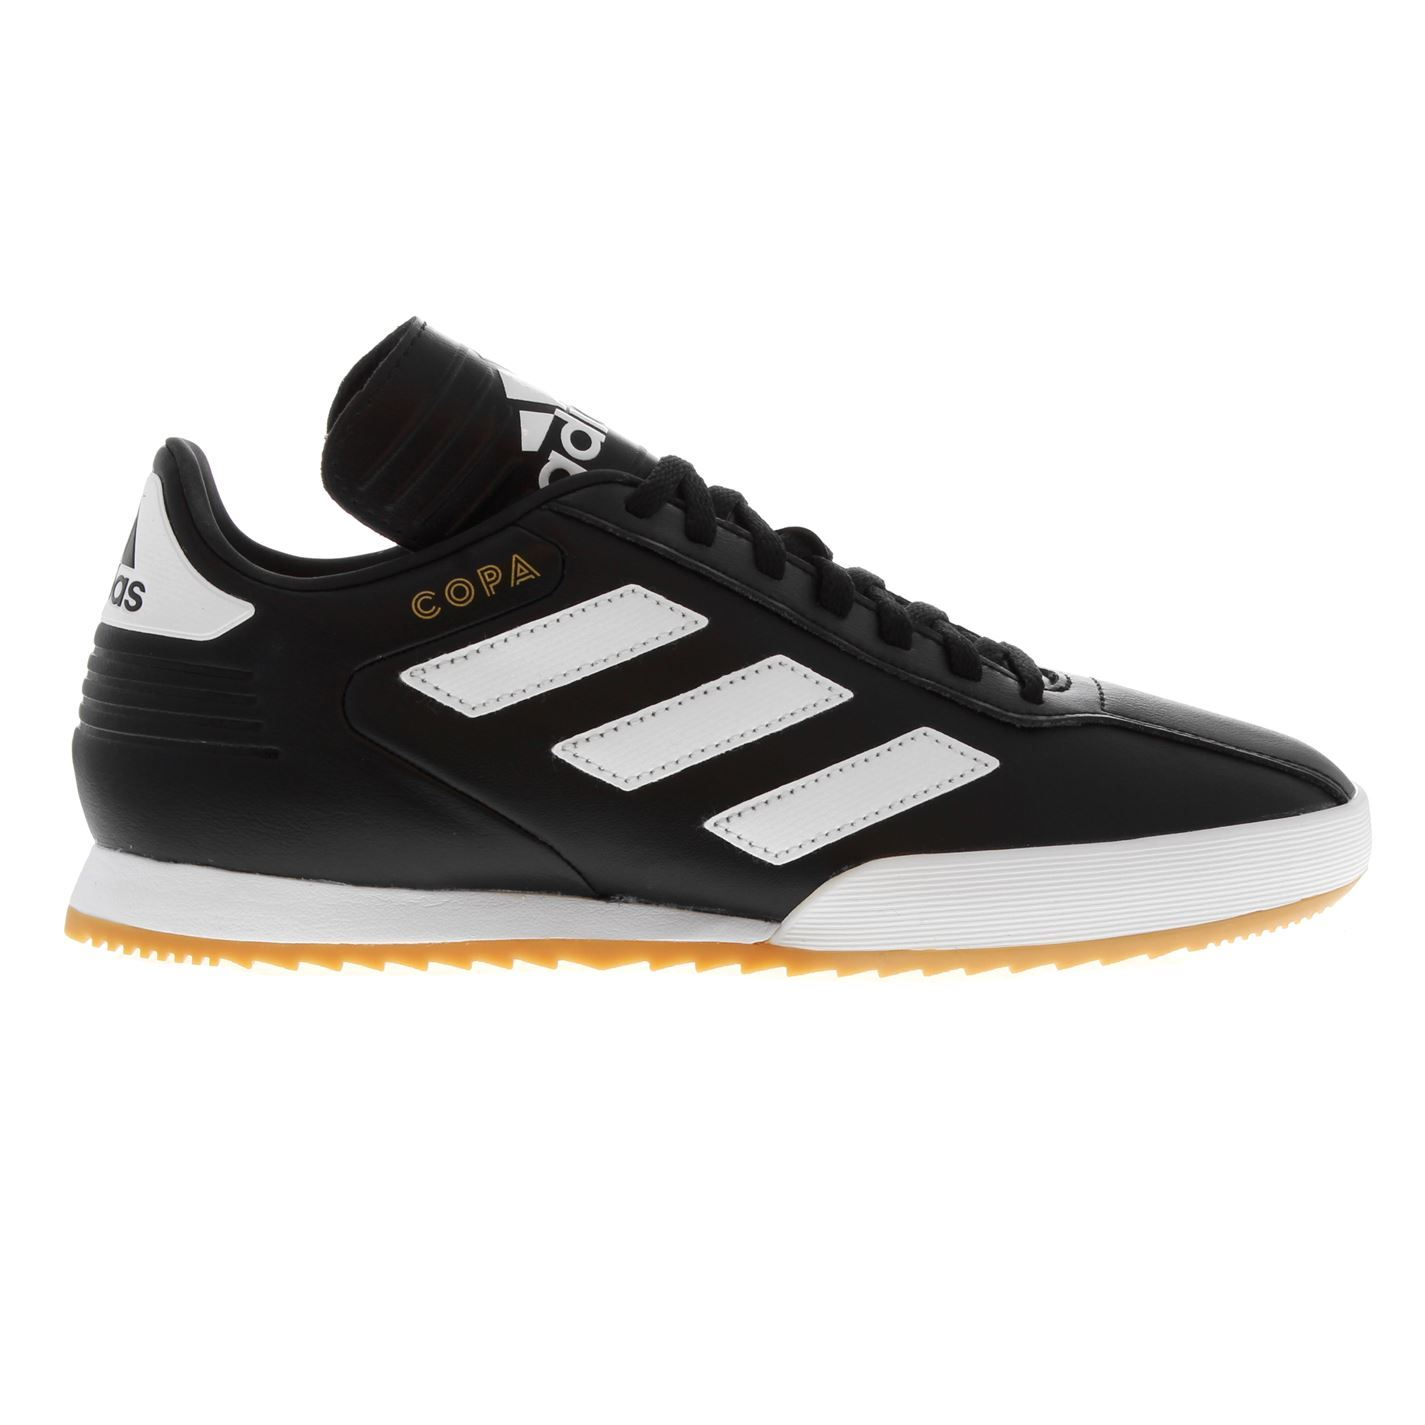 Adidas Up  Uomo Copa Super Leder Trainers Niedrig Lace Up Adidas Padded Ankle Collar Retro 6a10b9